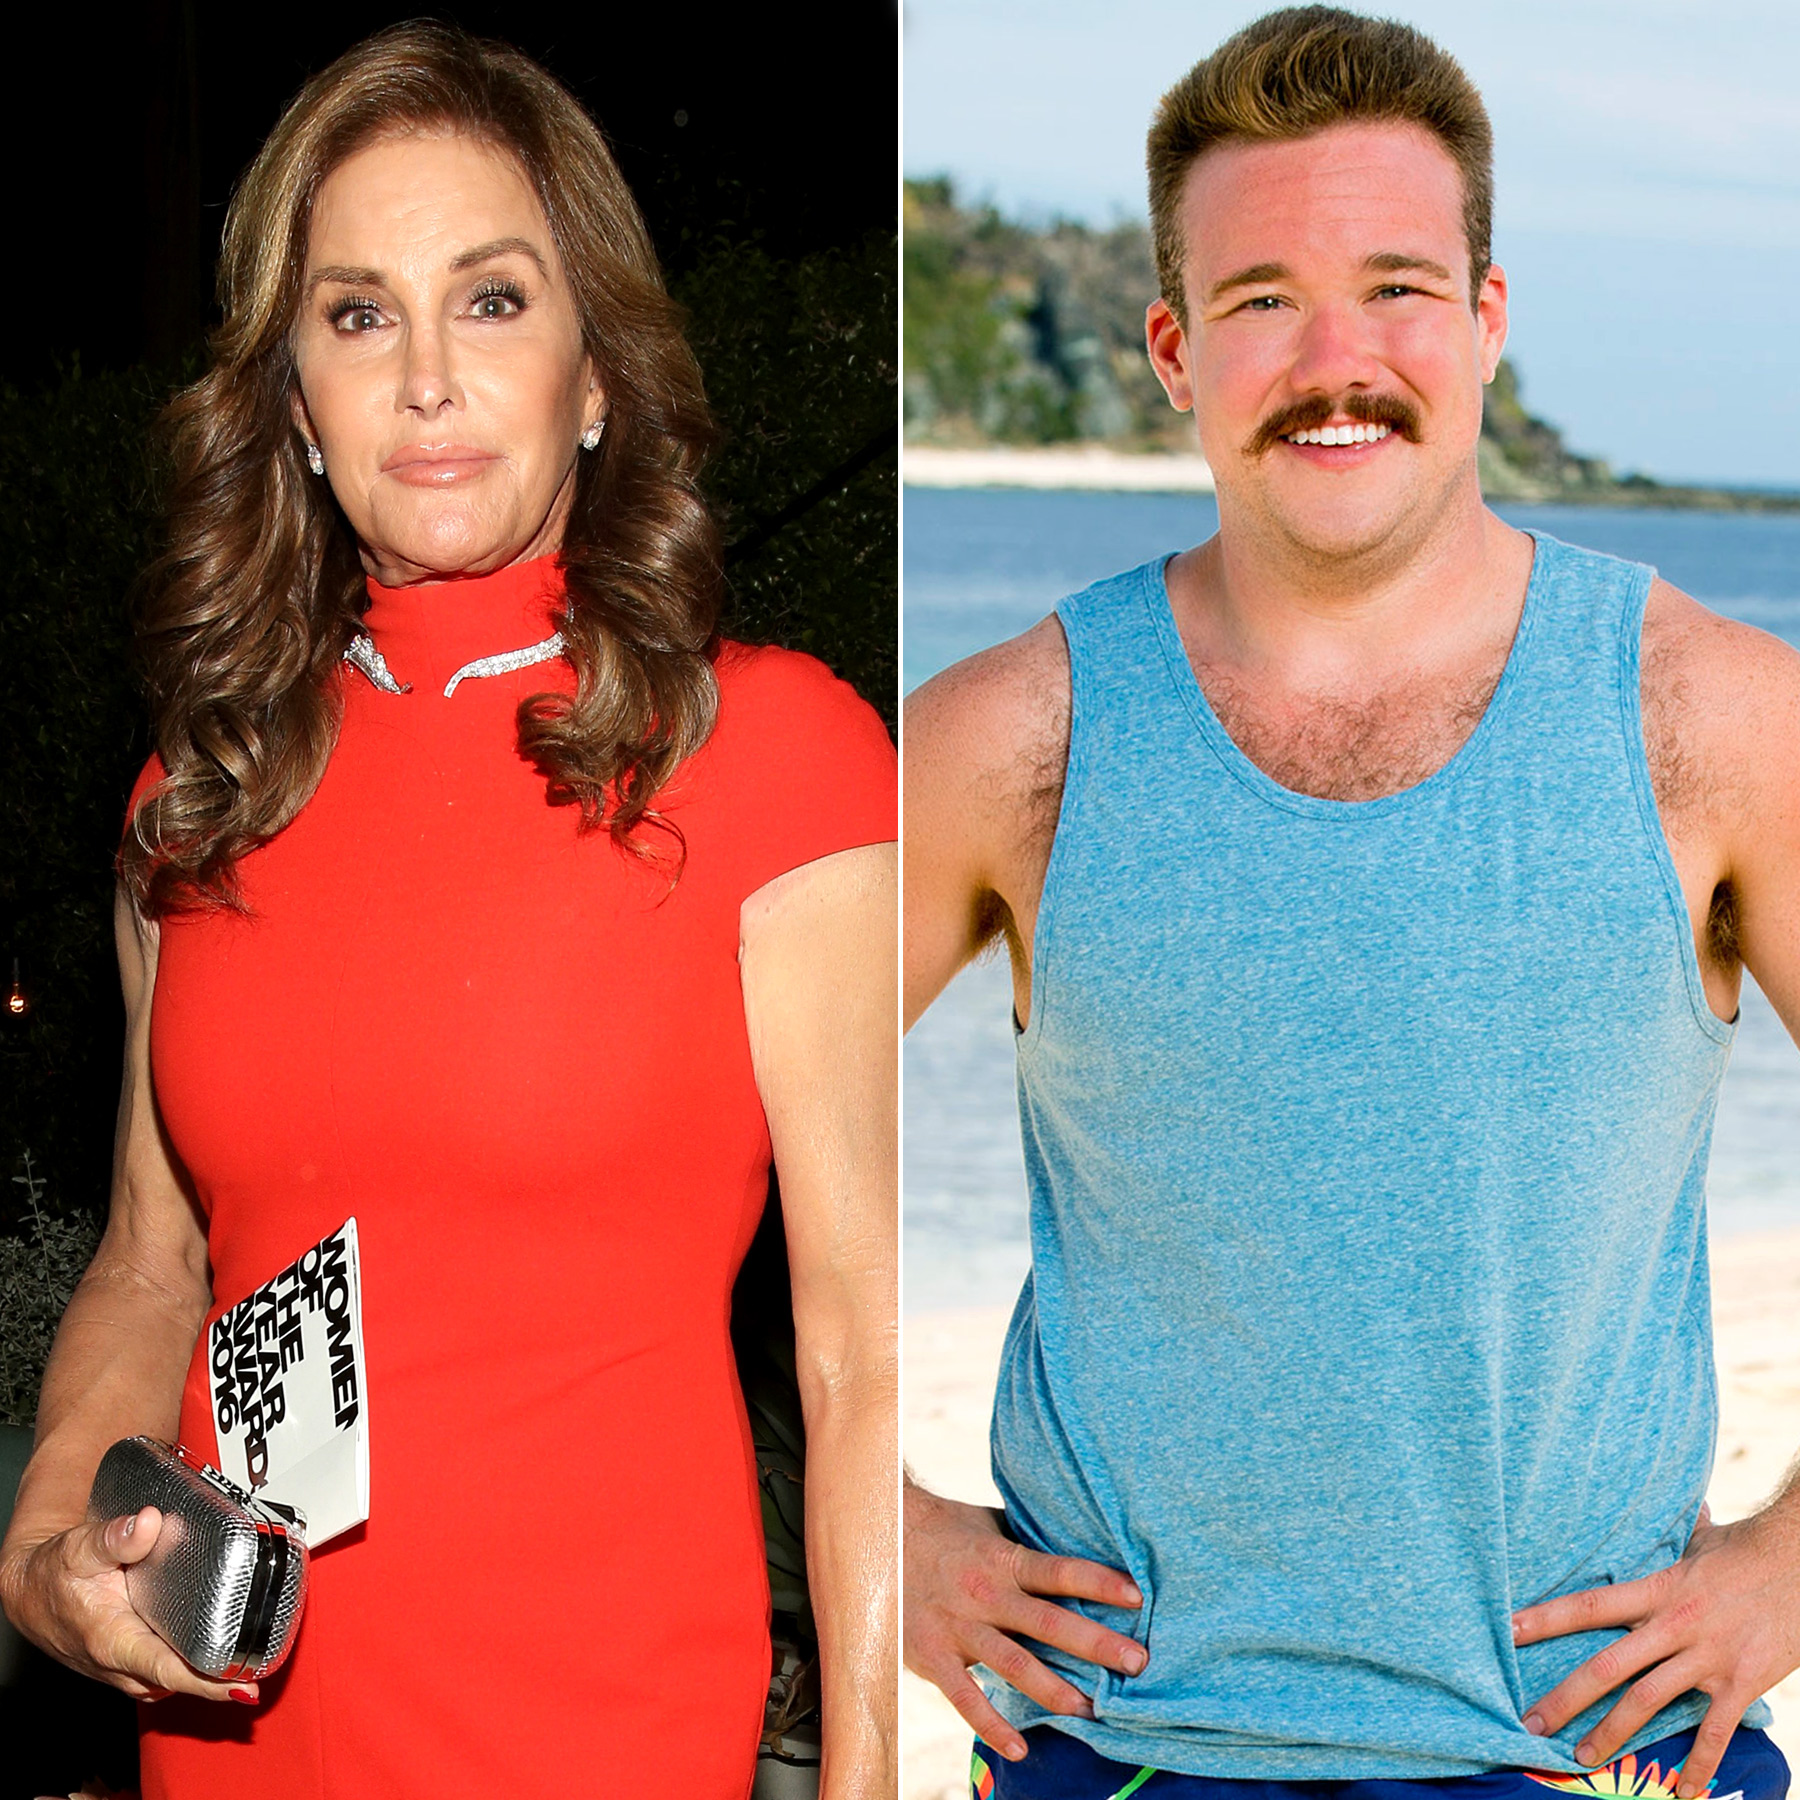 Caitlyn Jenner and Zeke Smith